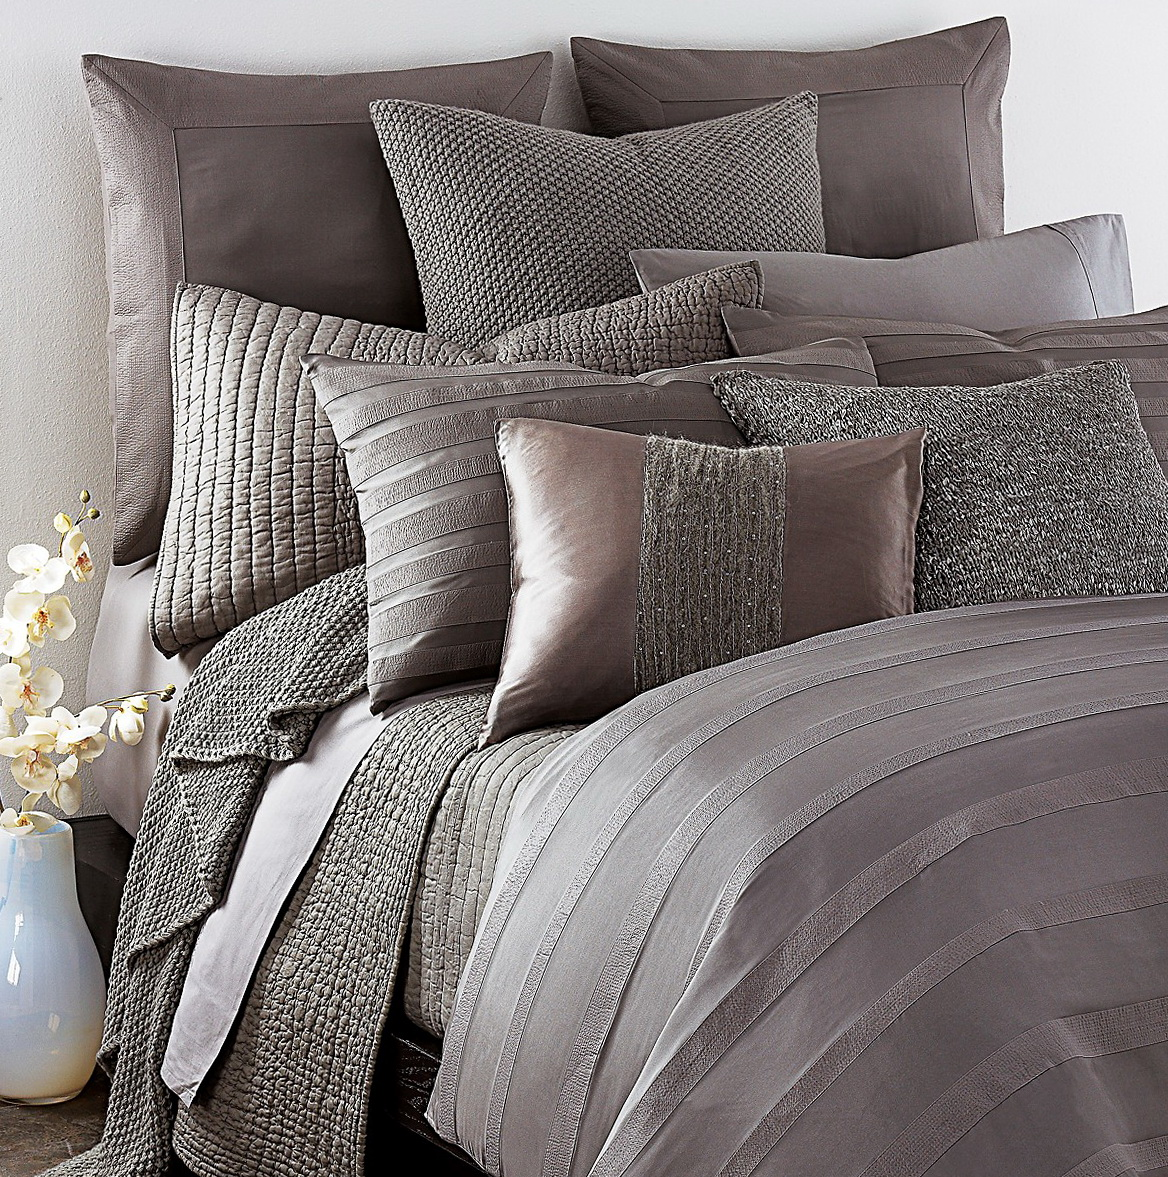 Donna Karan Bedding Reviews